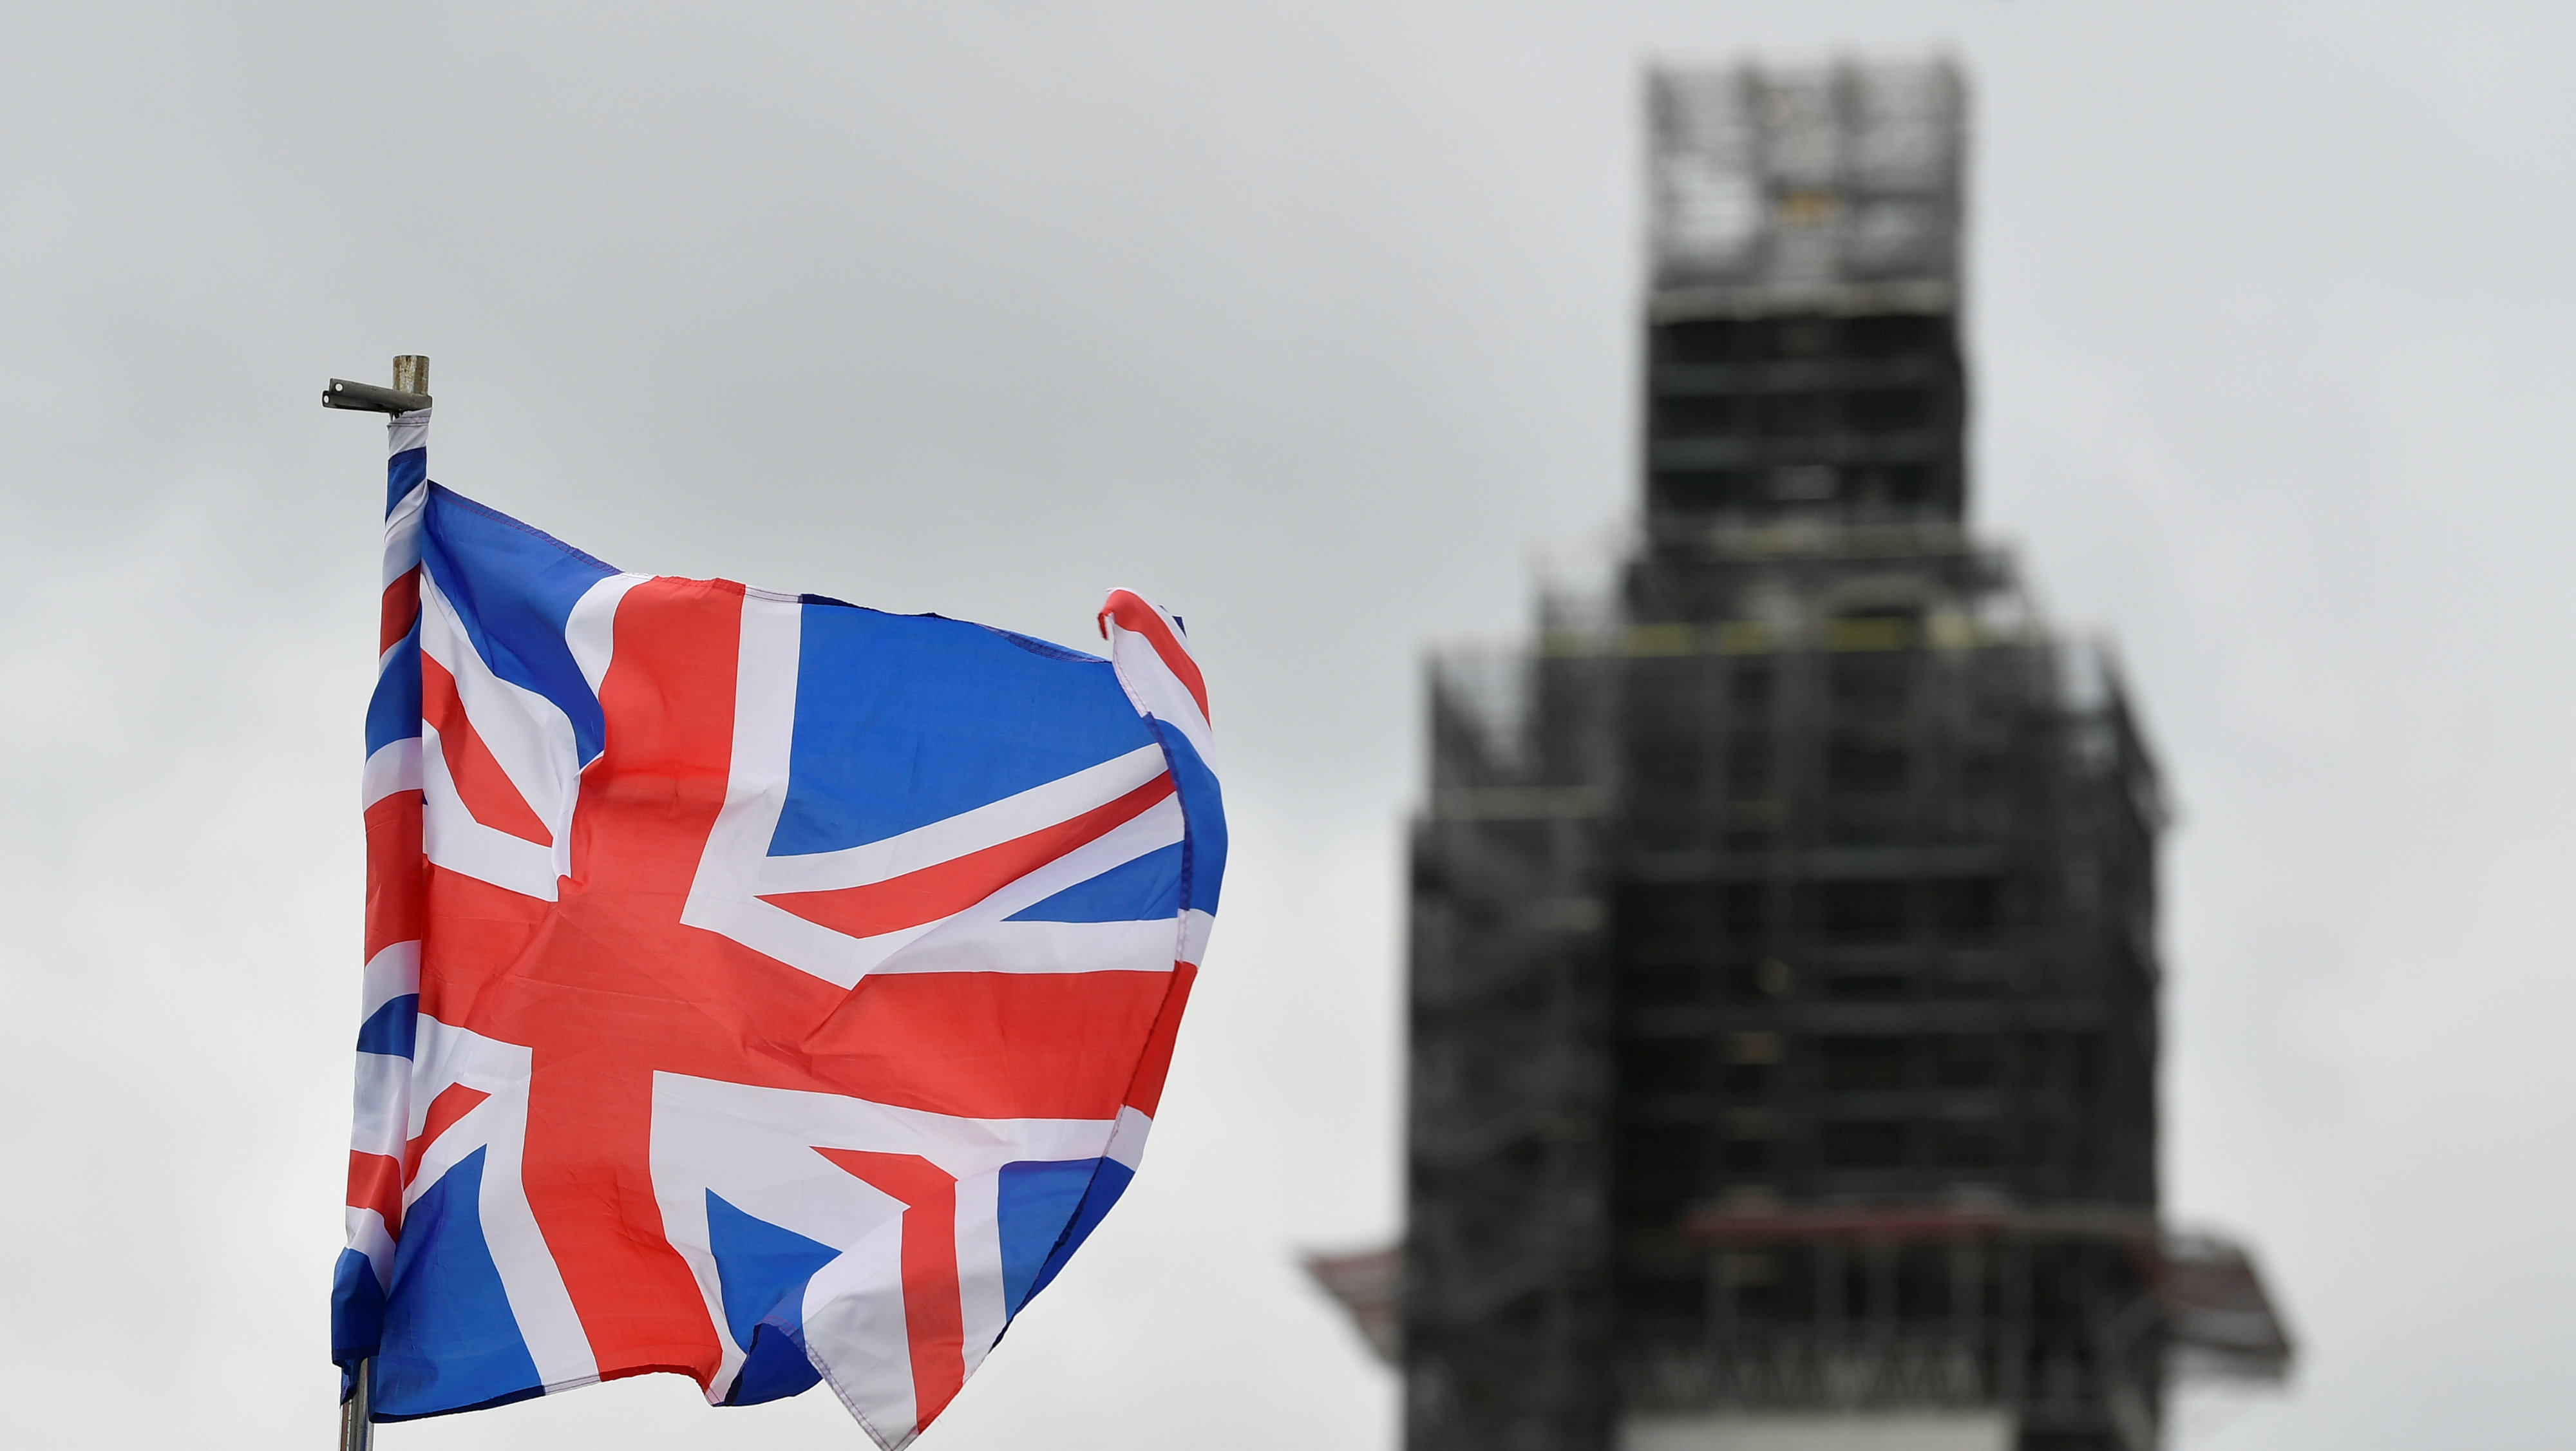 The British flag flutters in the wind near parliament